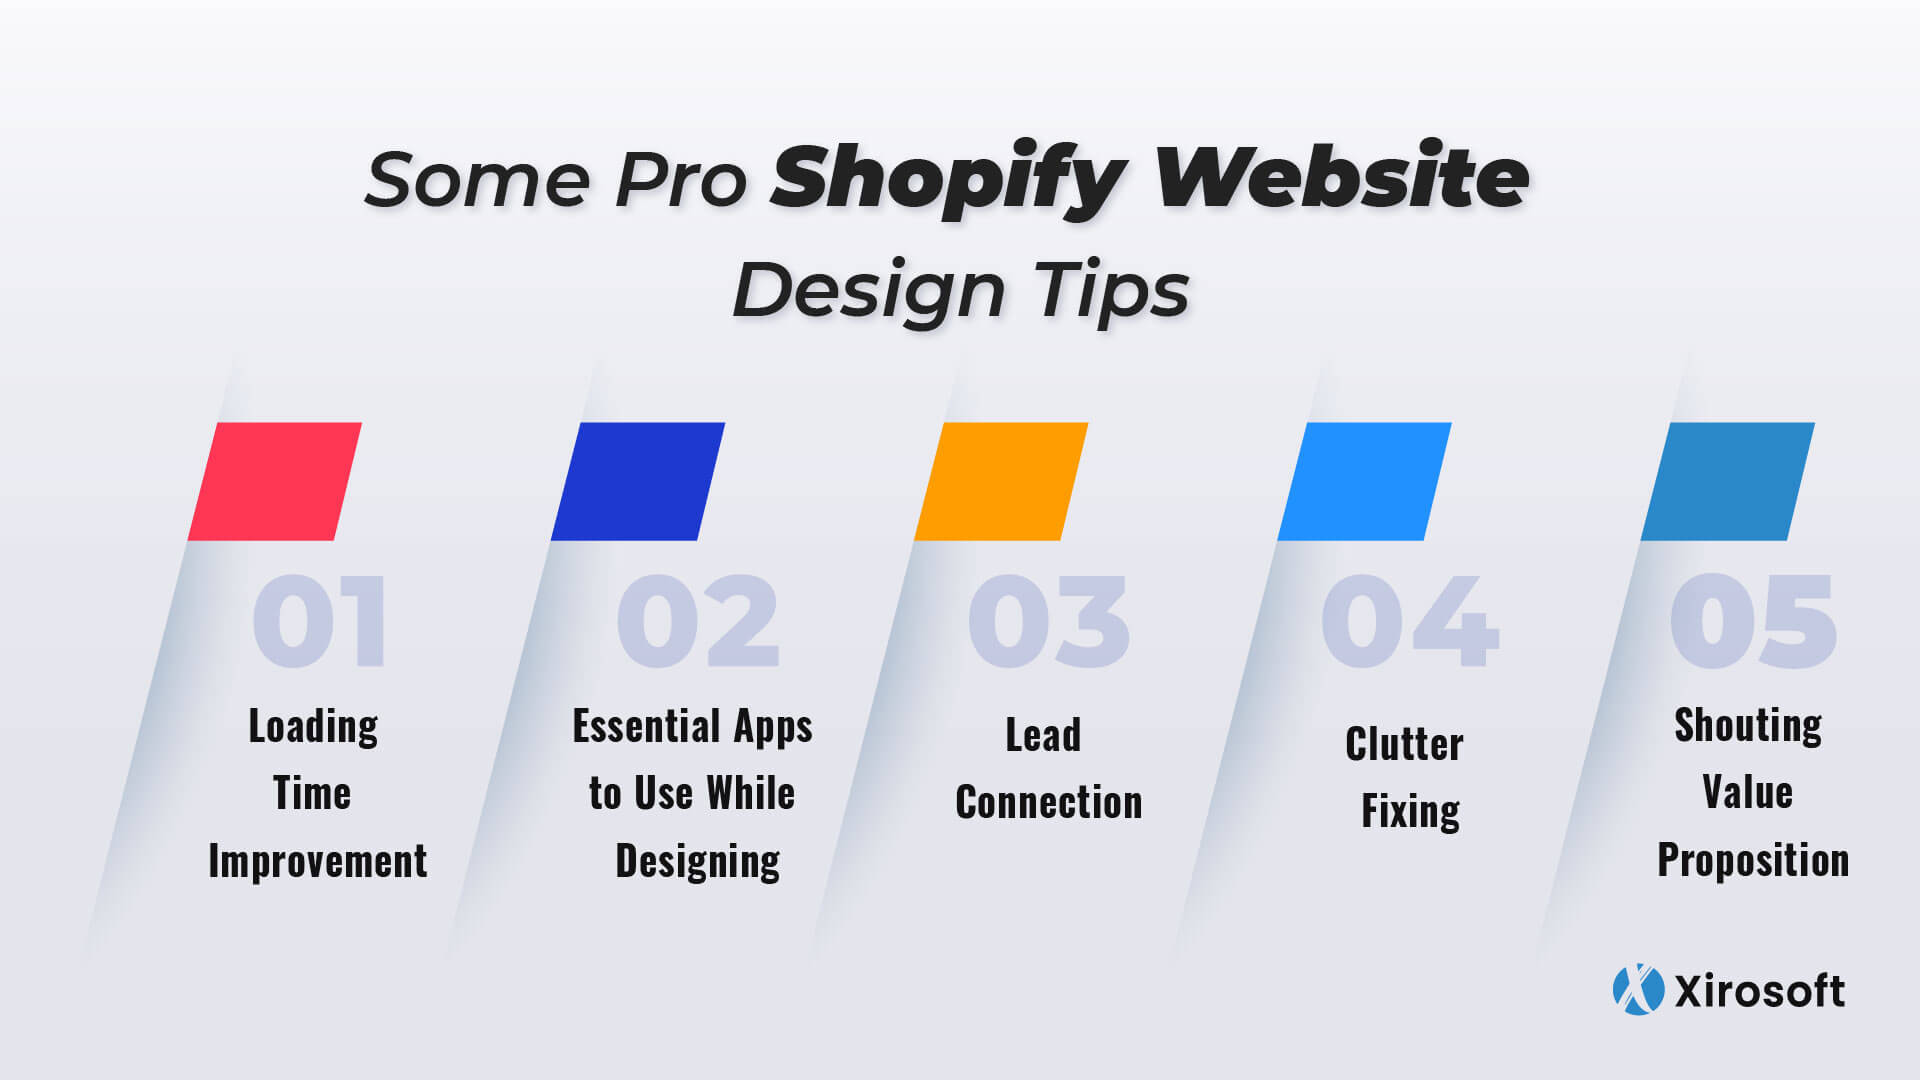 How To Design Shopify Website: Step-by-Step Tutorial